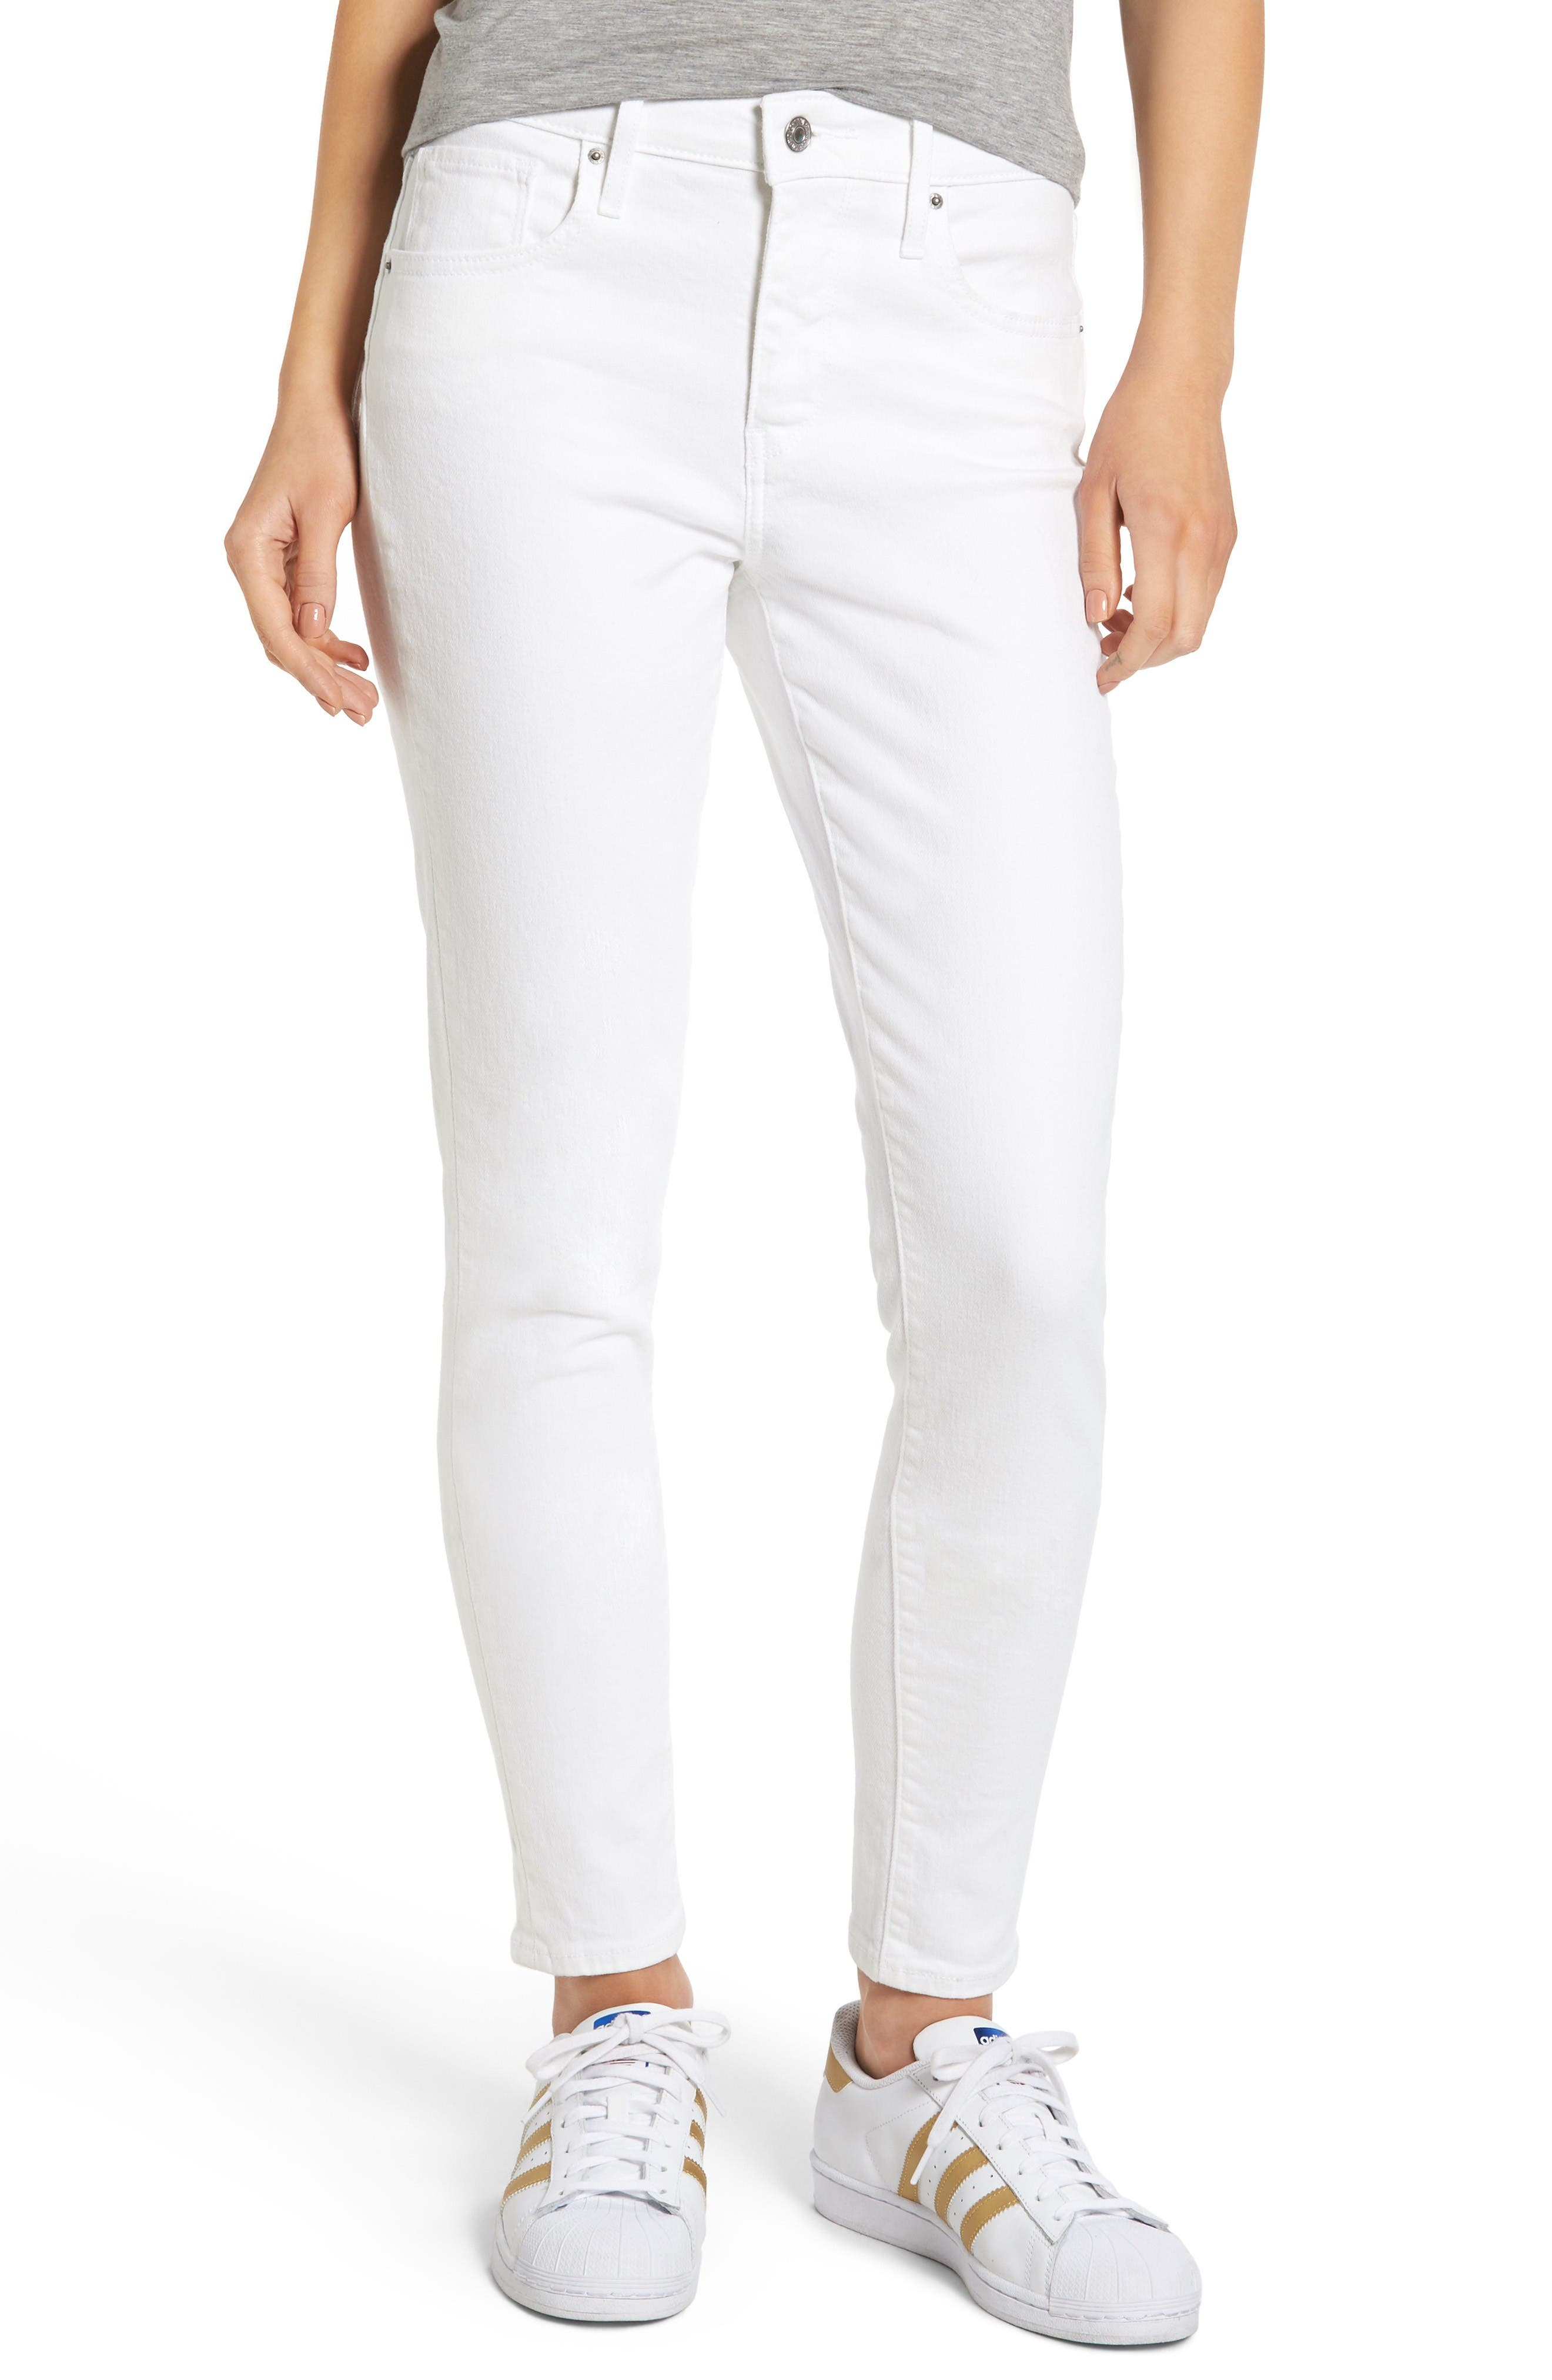 Alternate Image 1 Selected - Levi's® 721 High Rise Skinny Jeans